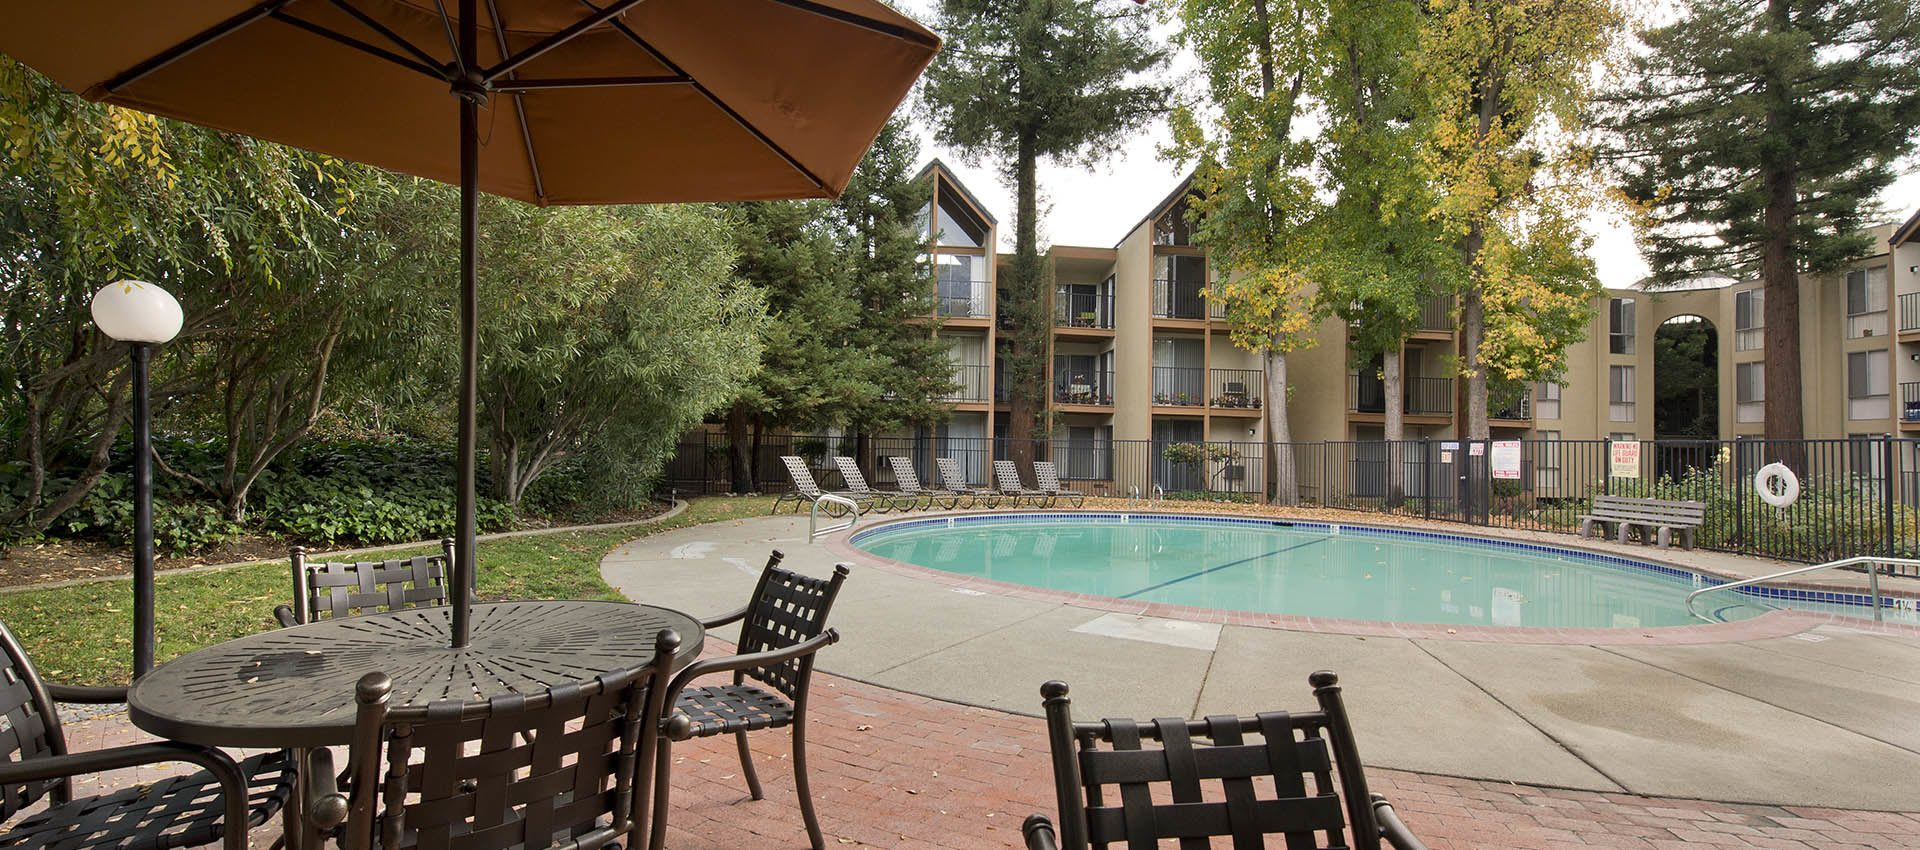 Pool and shaded seating nearby at Atrium Downtown in Walnut Creek, California